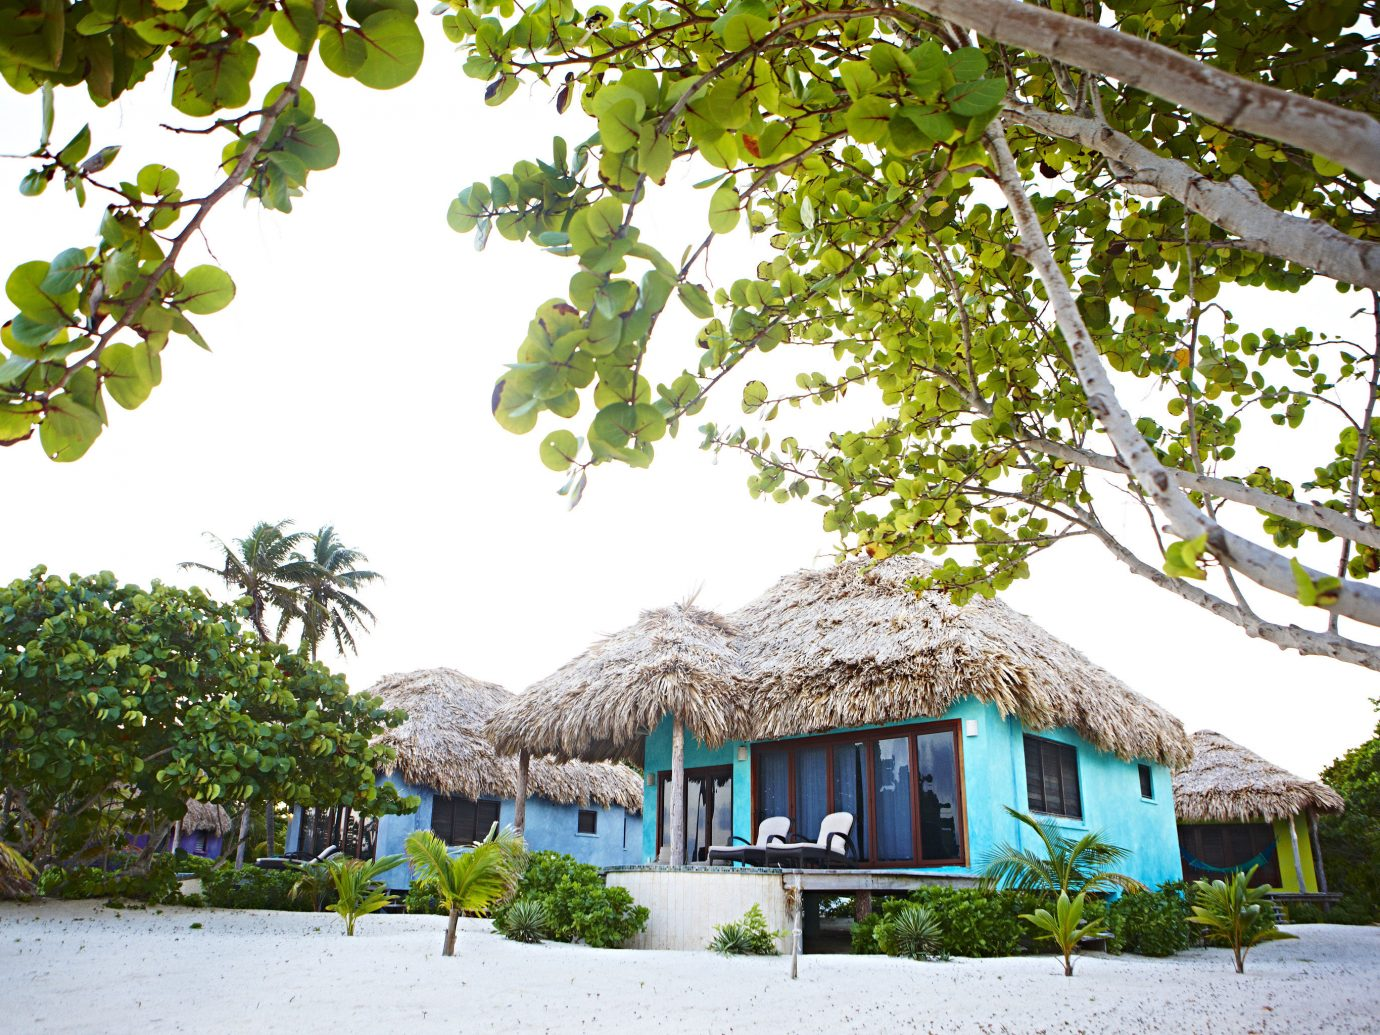 Matachica Beach Resort In Ambergris Caye, Belize